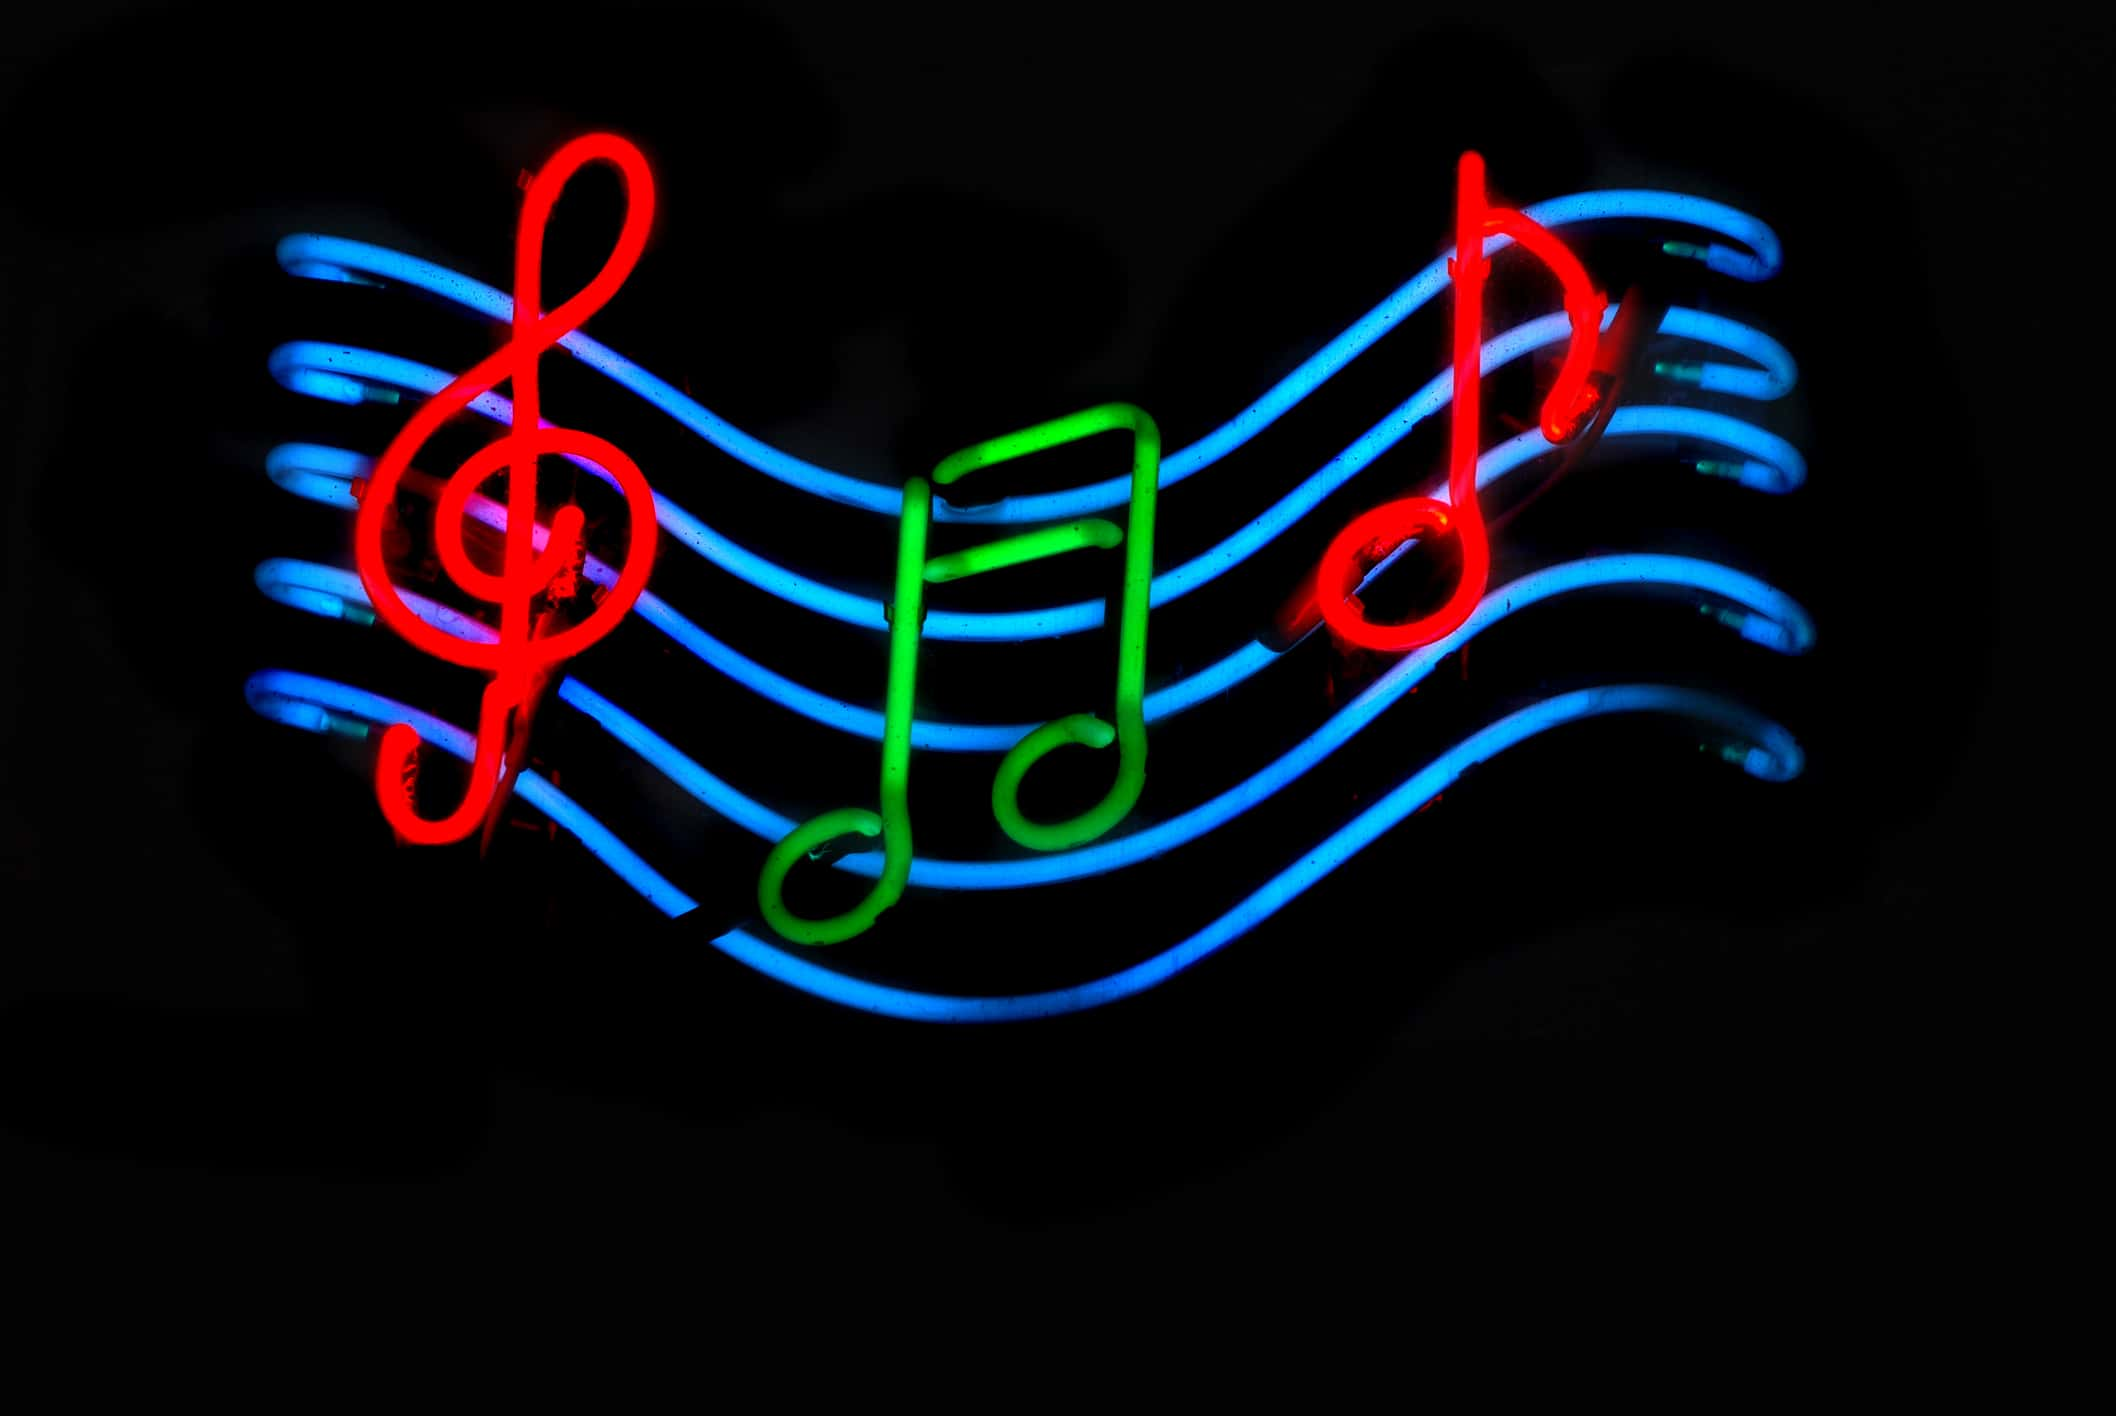 Black Car Lights Wallpaper The Clues In Music The Inspired Classroom